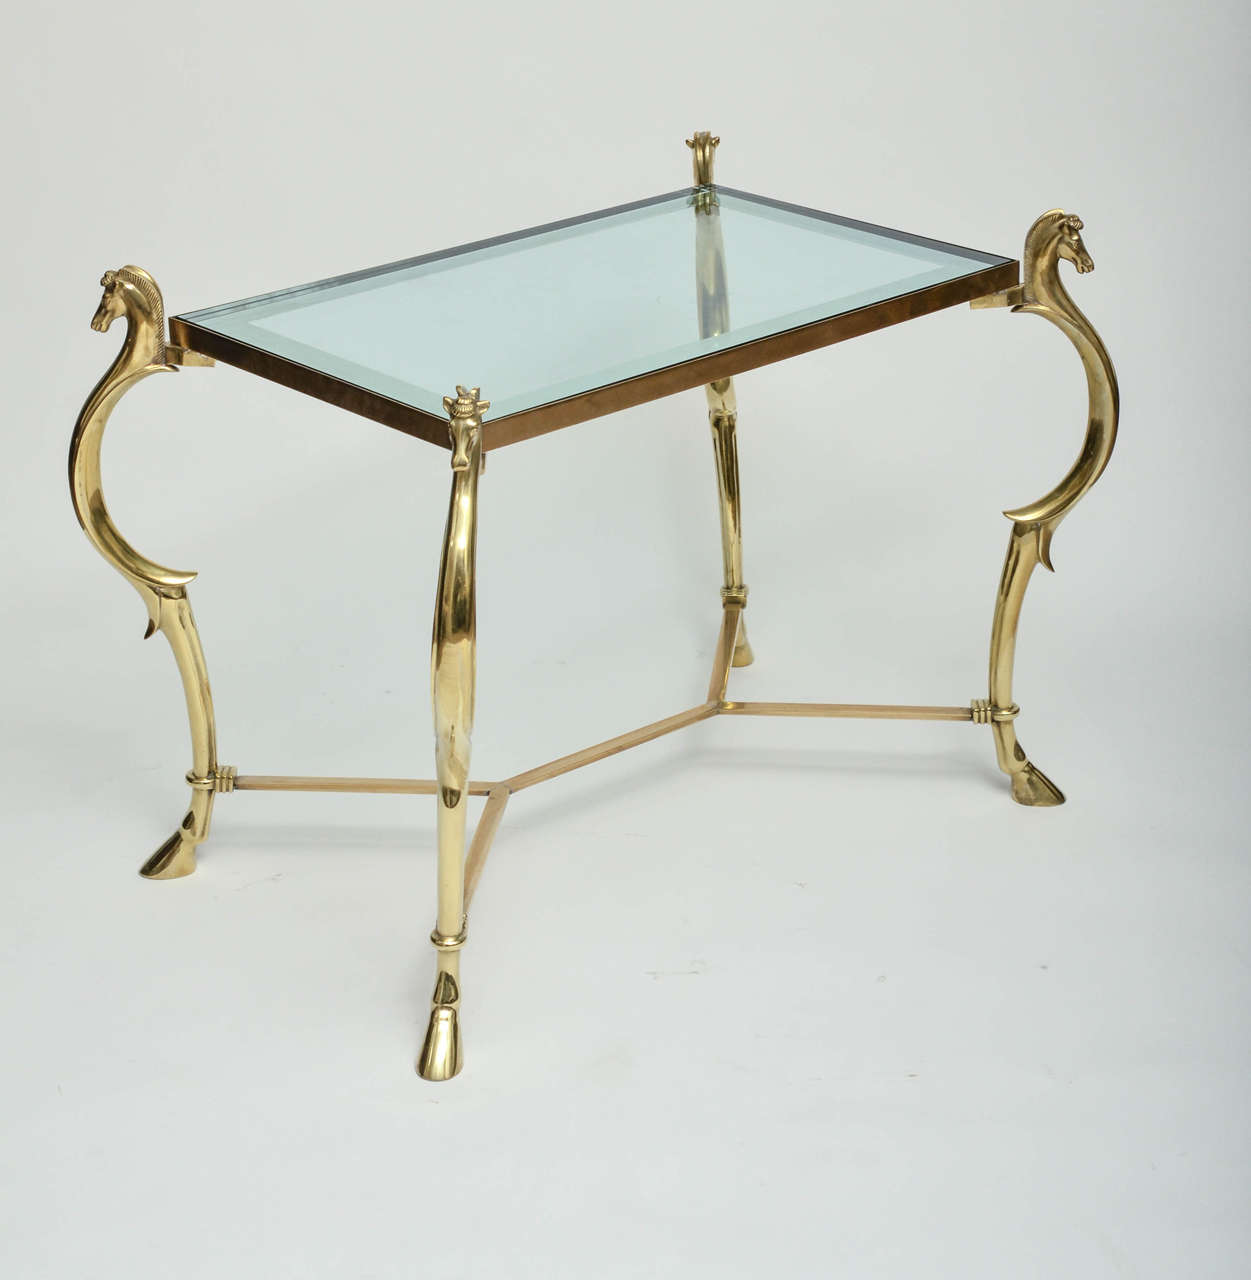 Pair of curvilinear brass side tables with horse head finials and mirror trim glass tops.